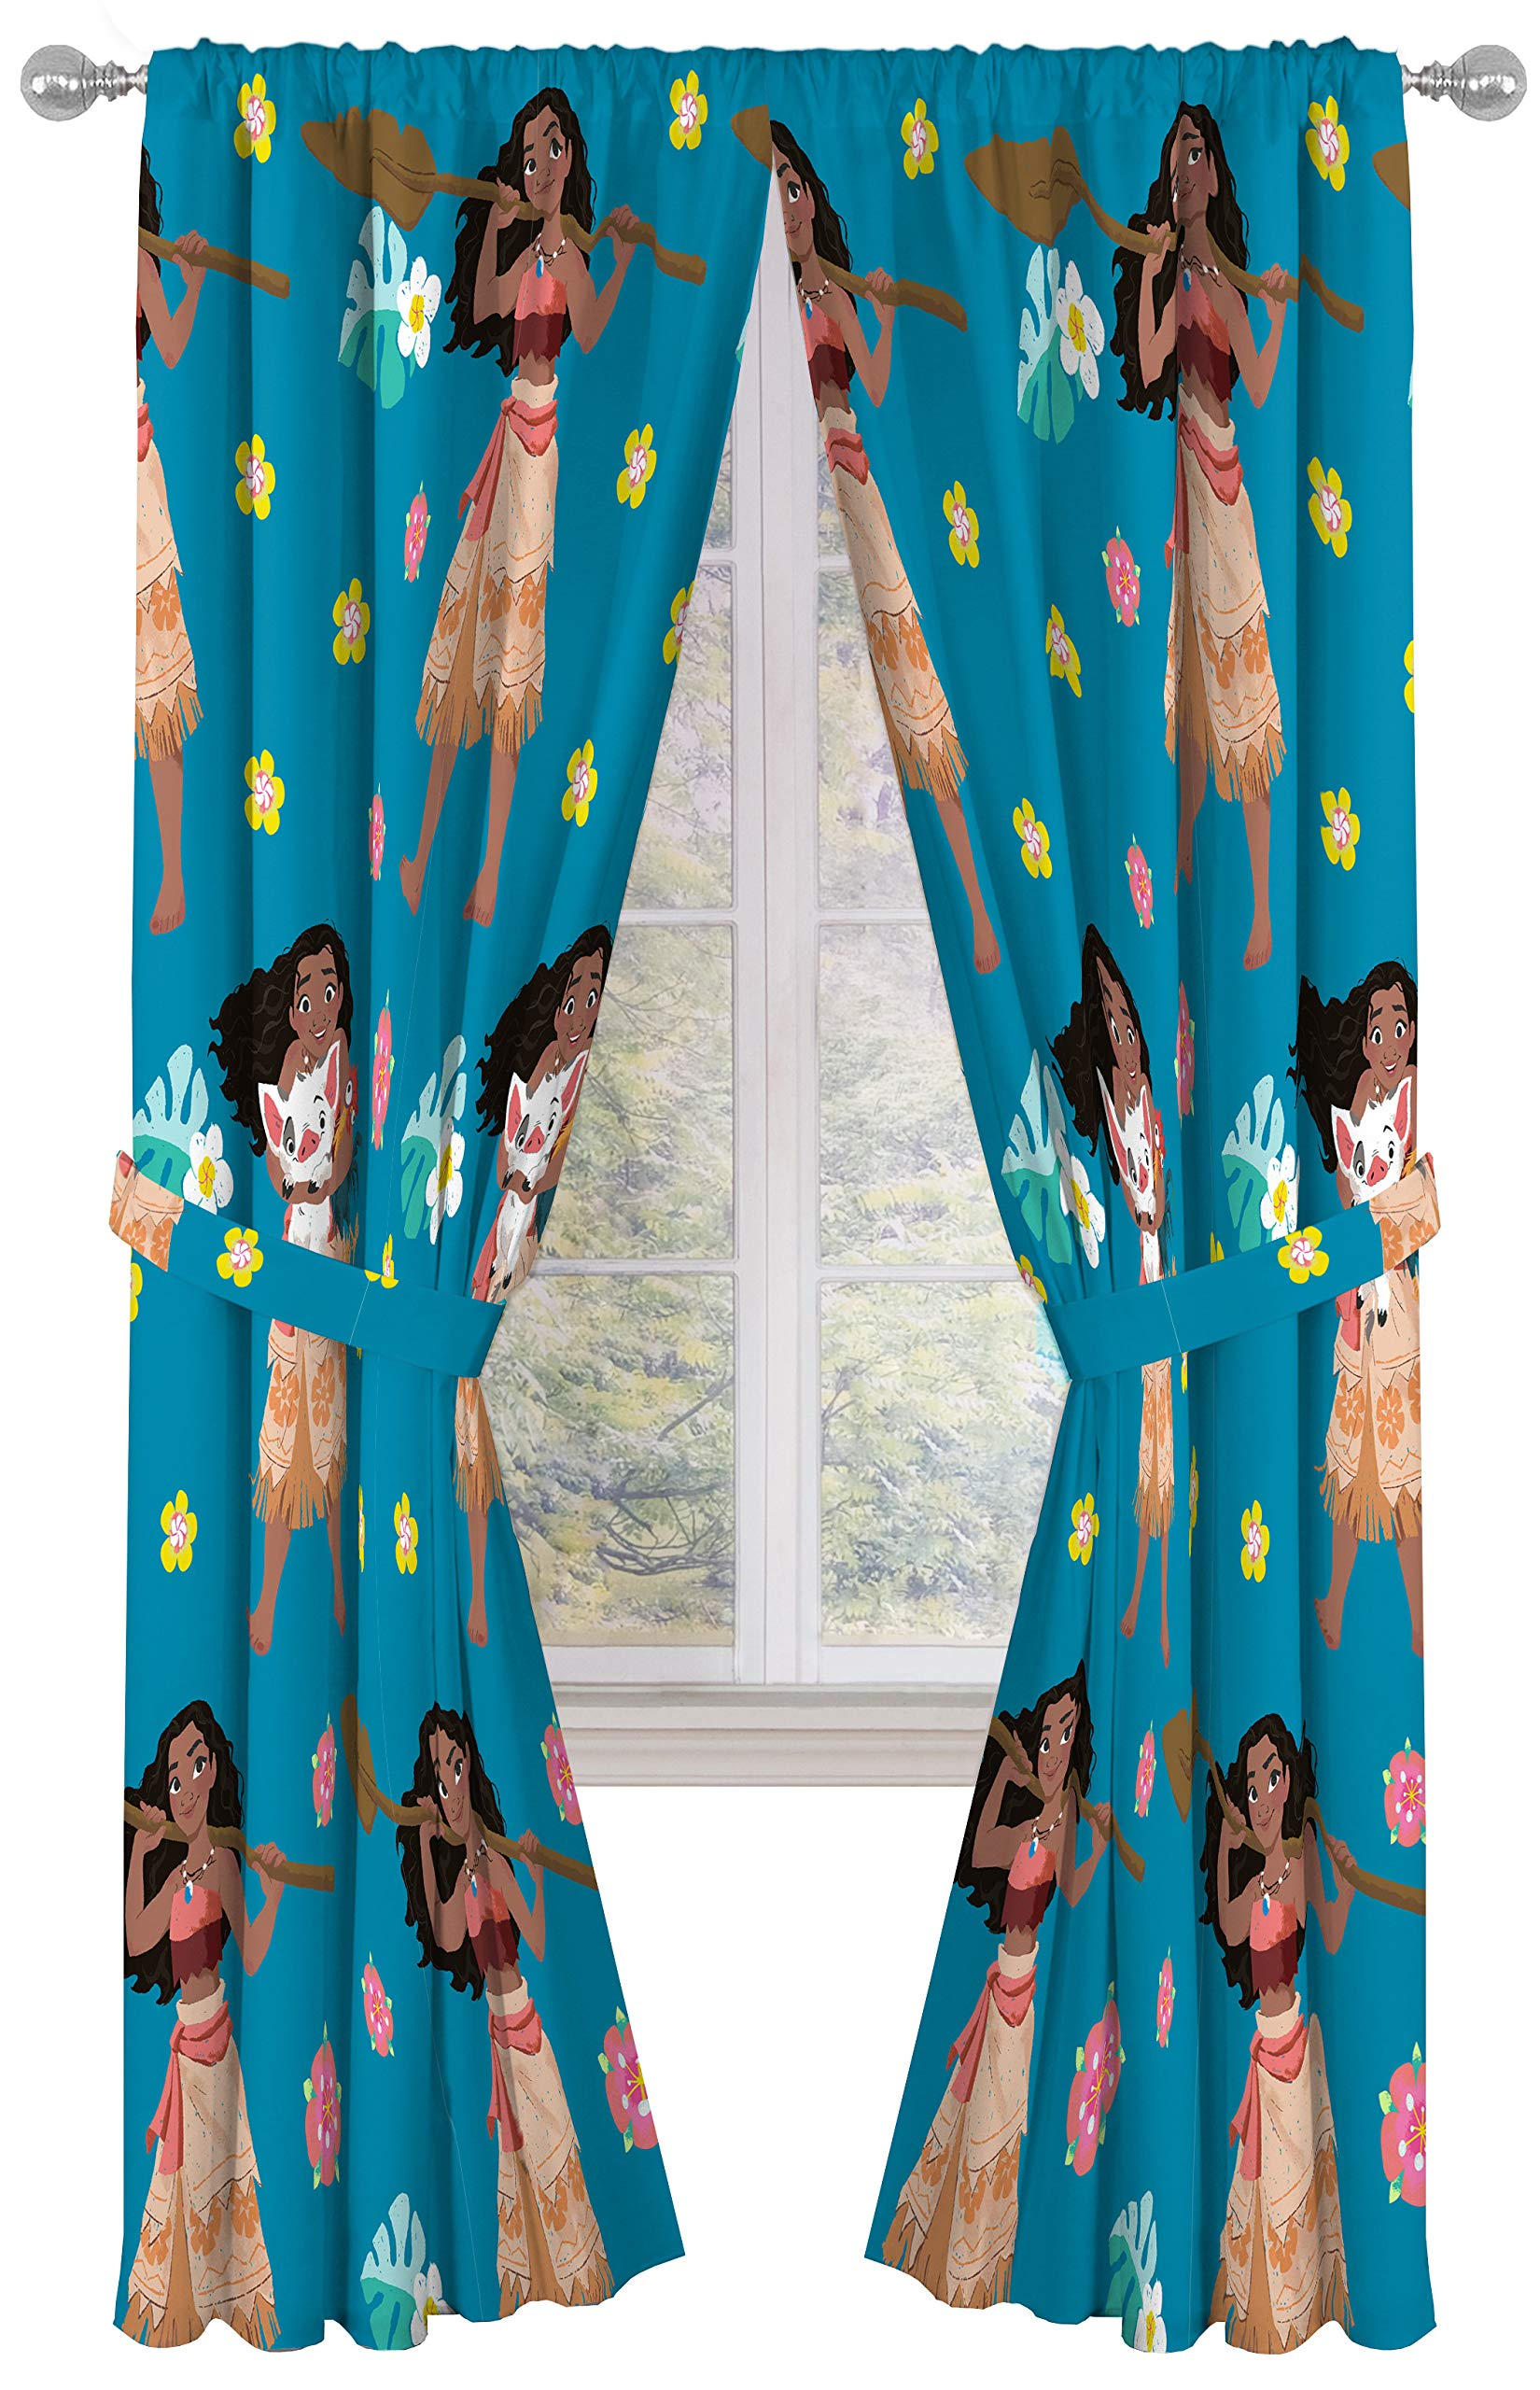 Disney Moana Flower Power Dark 84'' Inch Drapes 4 Piece Set - Beautiful Room Décor & Easy Set Up, Bedding Features Pua & HeiHei - Window Curtains Include 2 Panels & 2 Tiebacks (Official Disney Product)